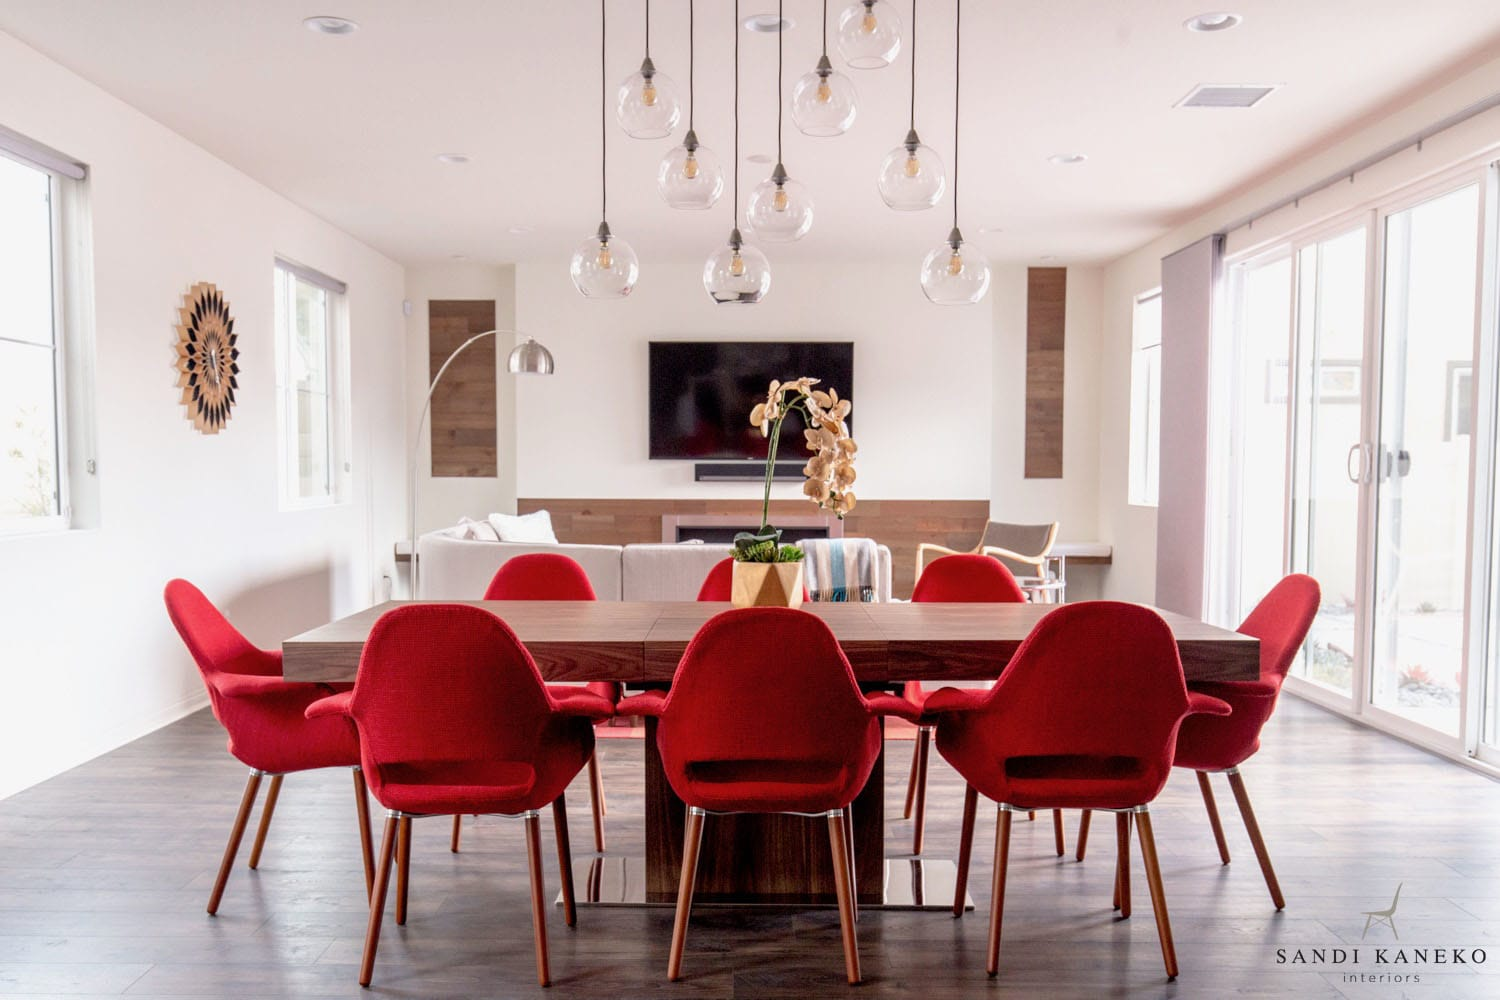 Modern clean great room with dining table and fireplace and Stikwood peel and stik wood accent walls in Vandyke finish.